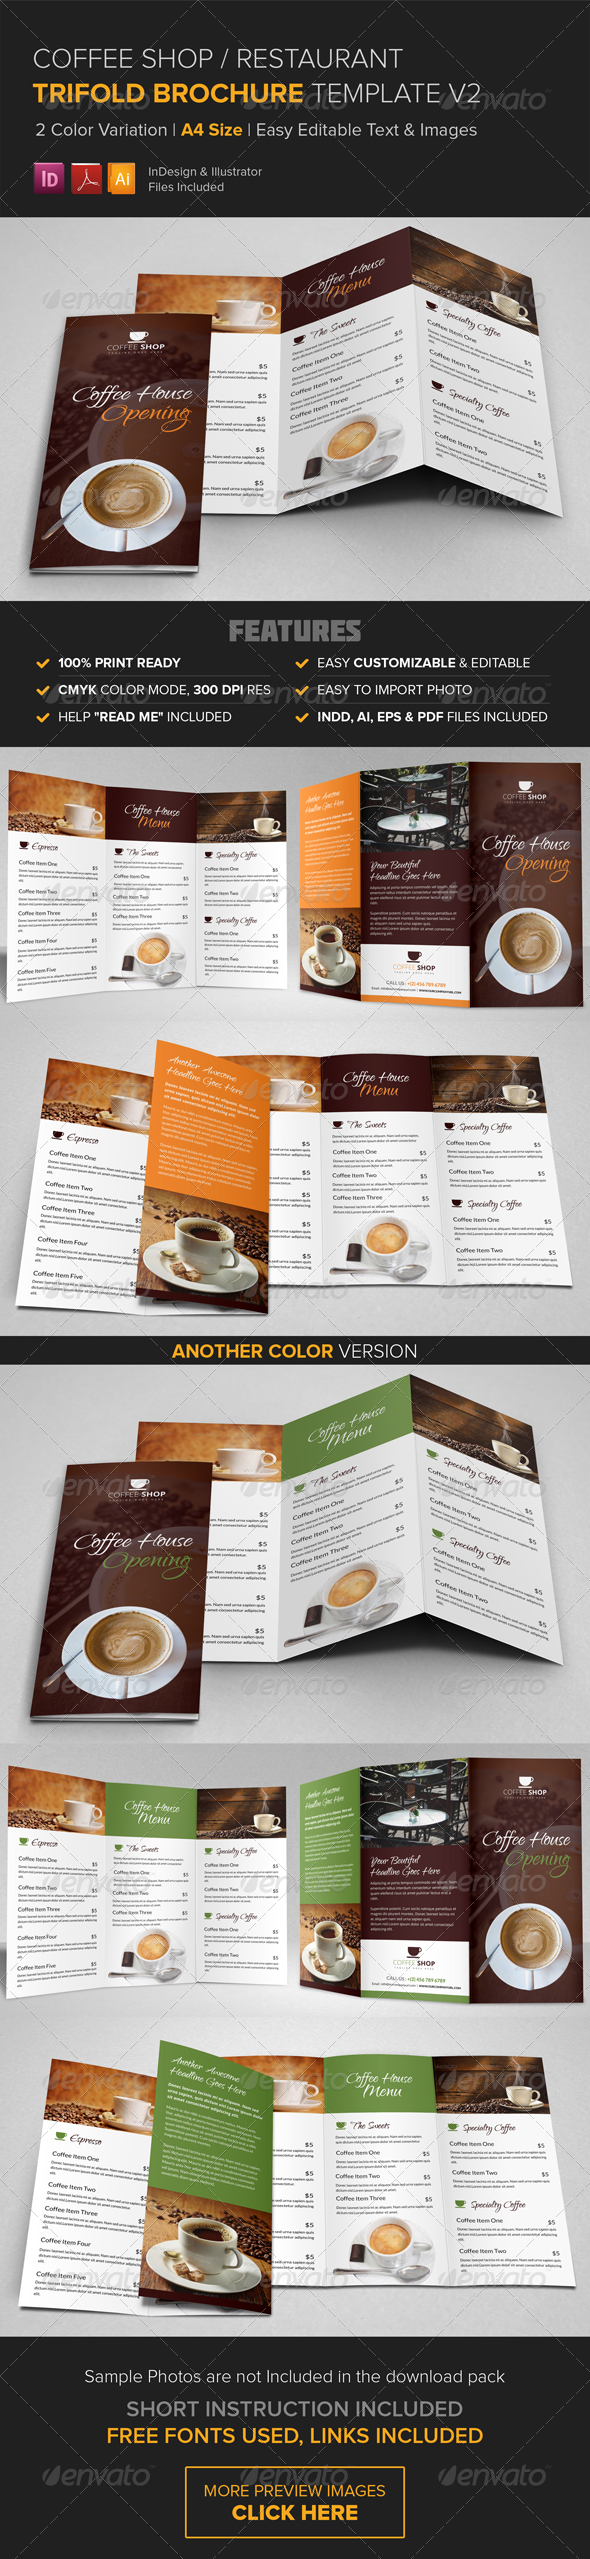 GraphicRiver Coffee Shop Restaurant Trifold Brochure v2 8616675